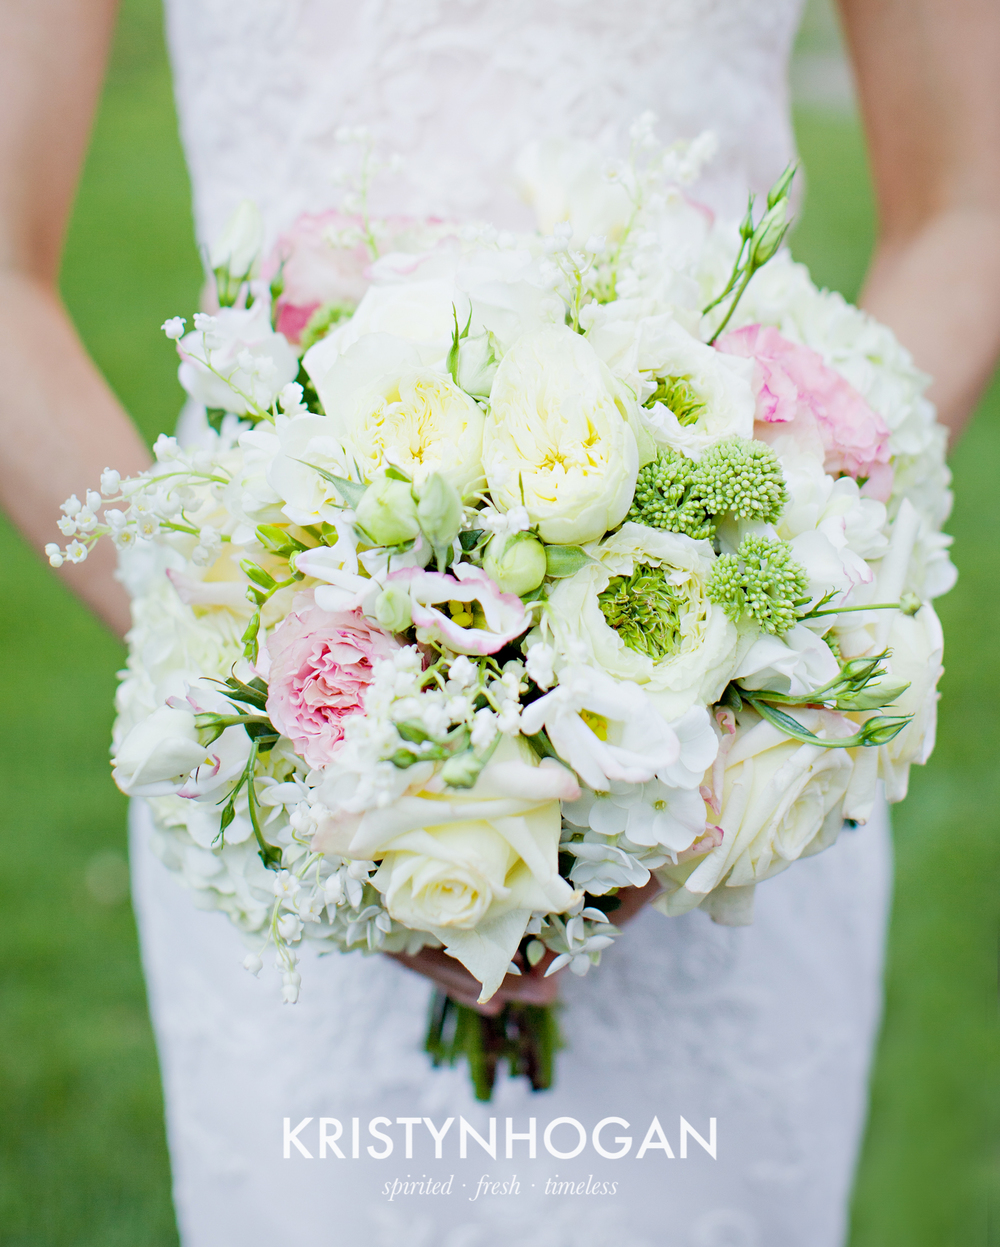 Bouquet of Garden Roses, Lisianthus, Sedum, Hydrangea, Phlox and Lily of the Valley